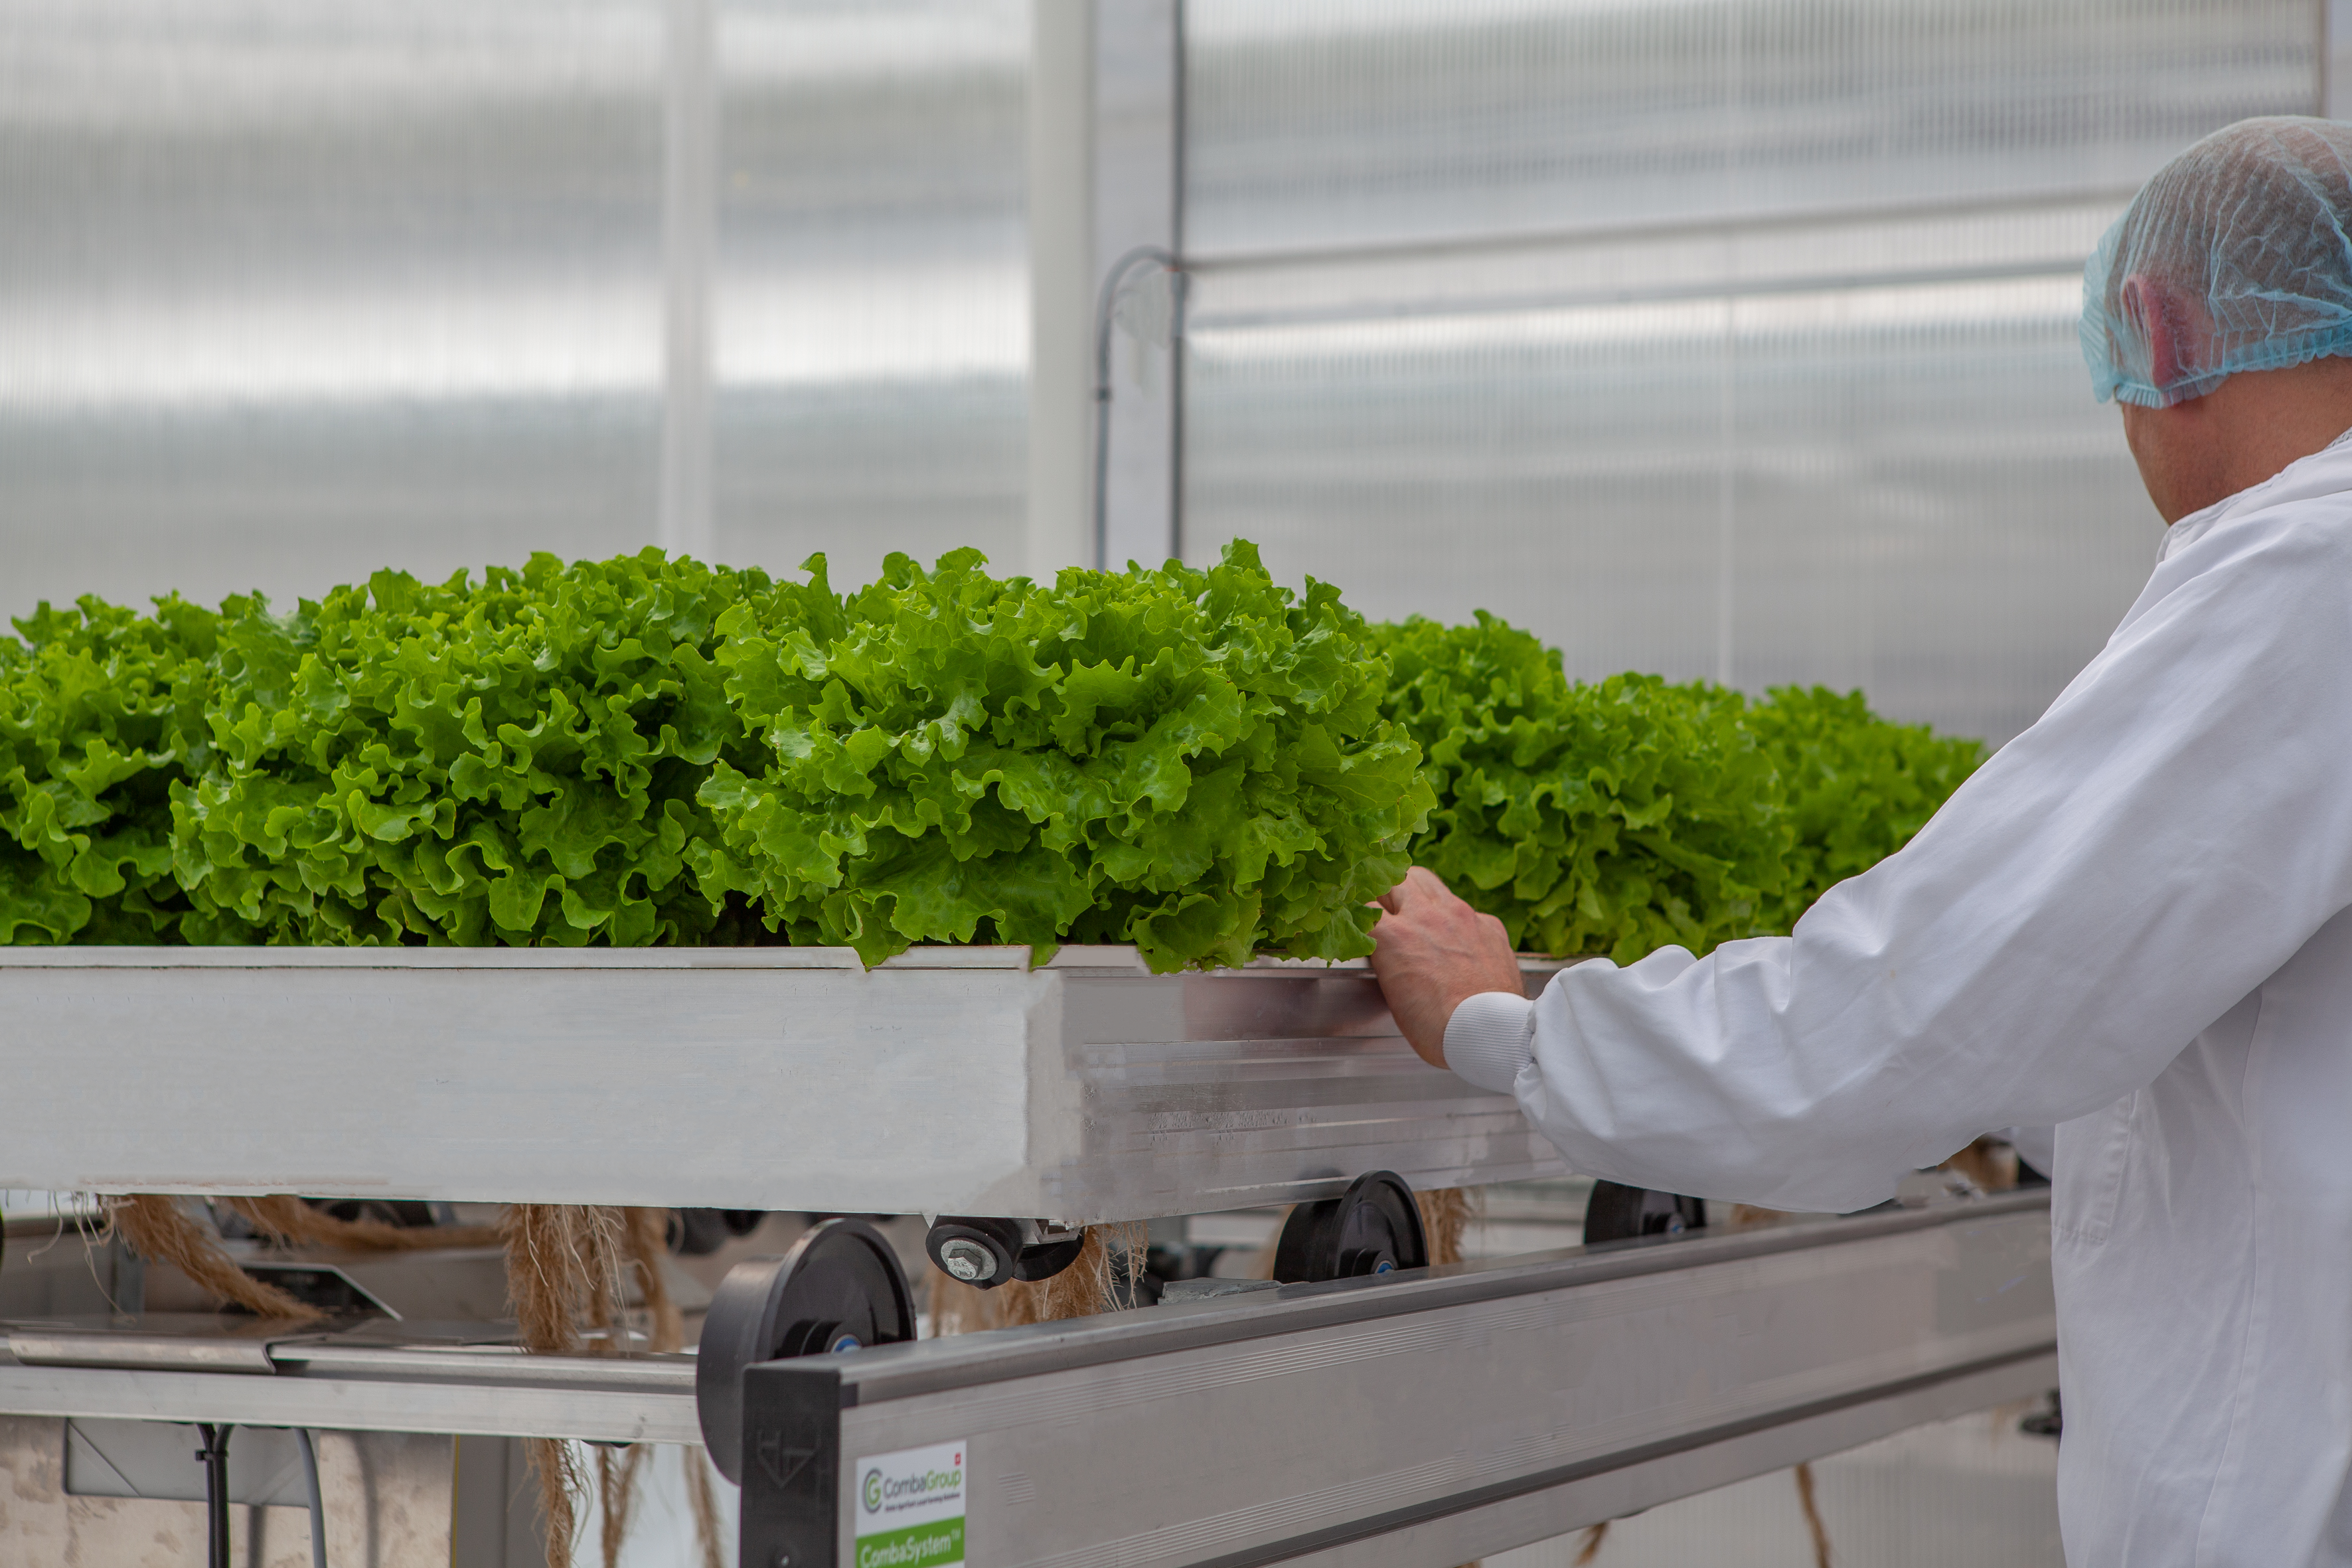 CleanGreens cultivation table batavia easy handling sustainable agriculture premium quality